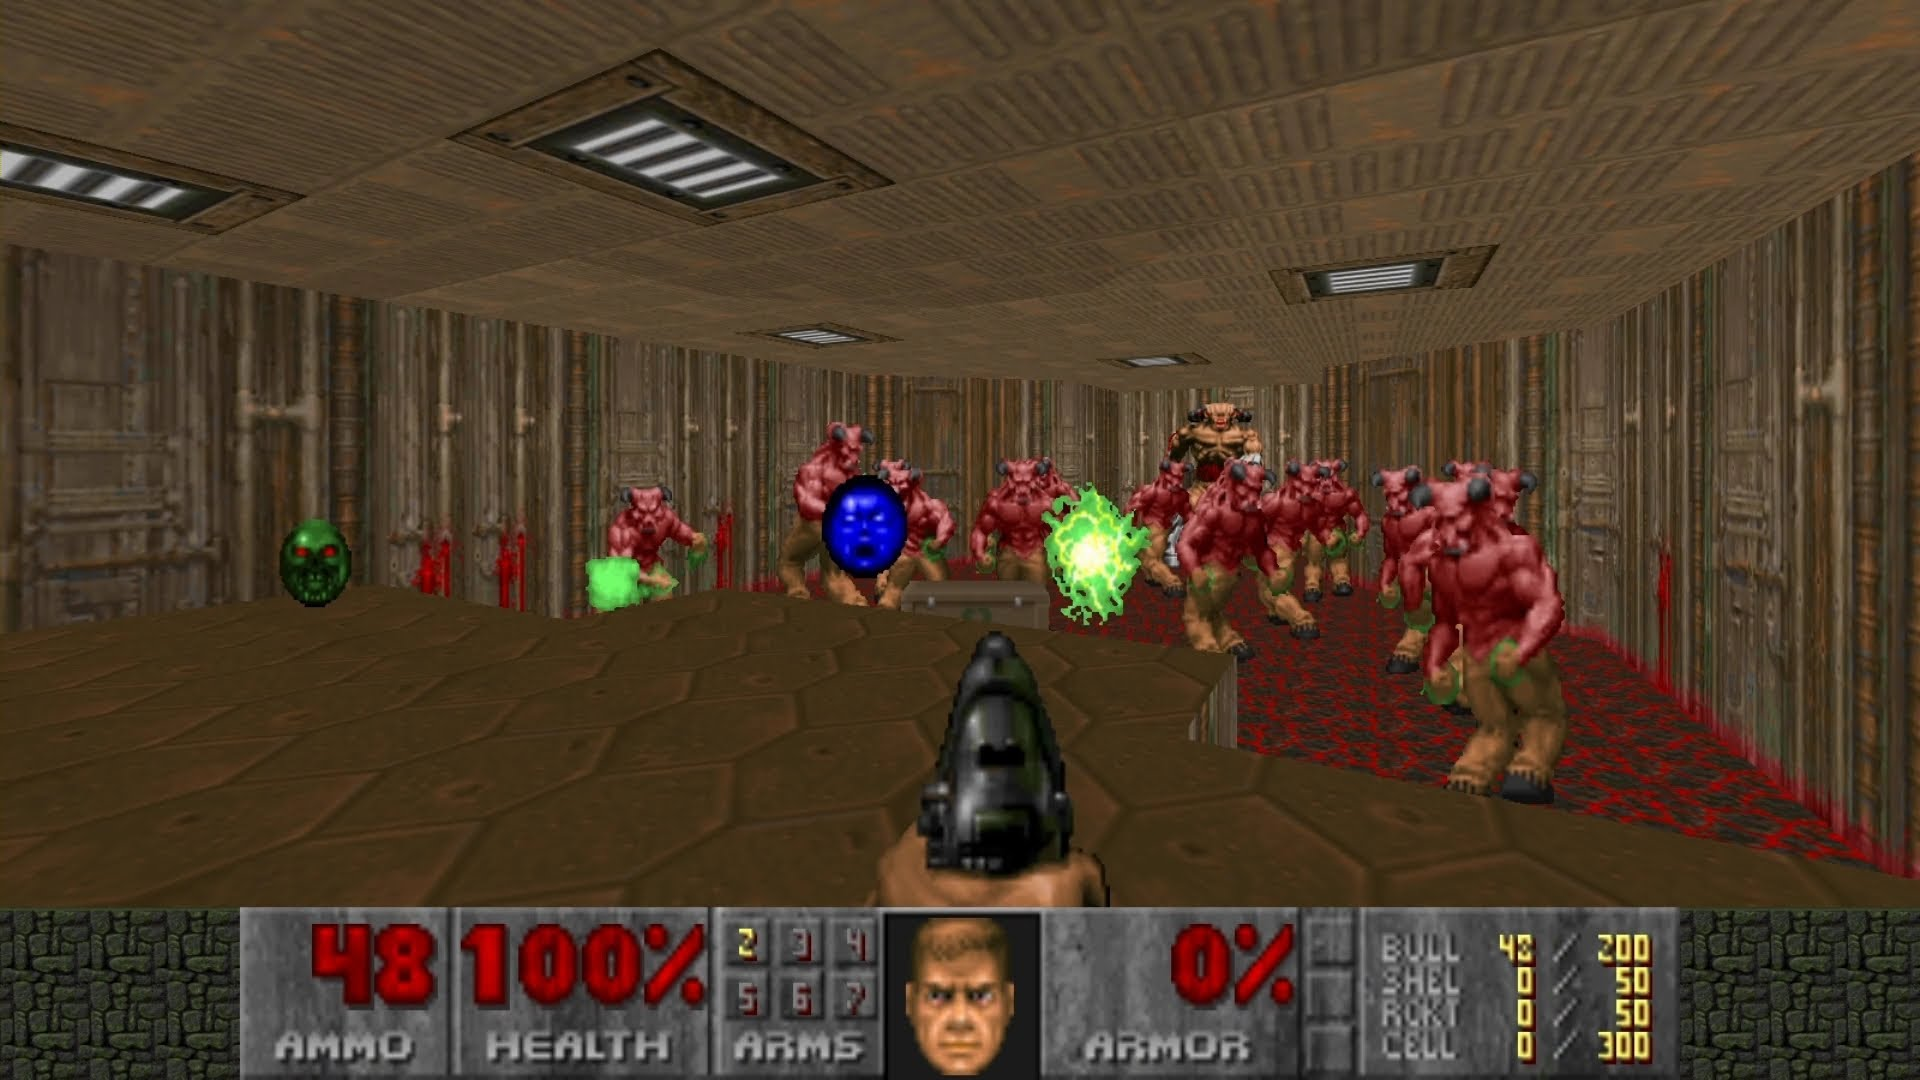 Doom 2 will get Battle Royale thanks to new mod - VG247